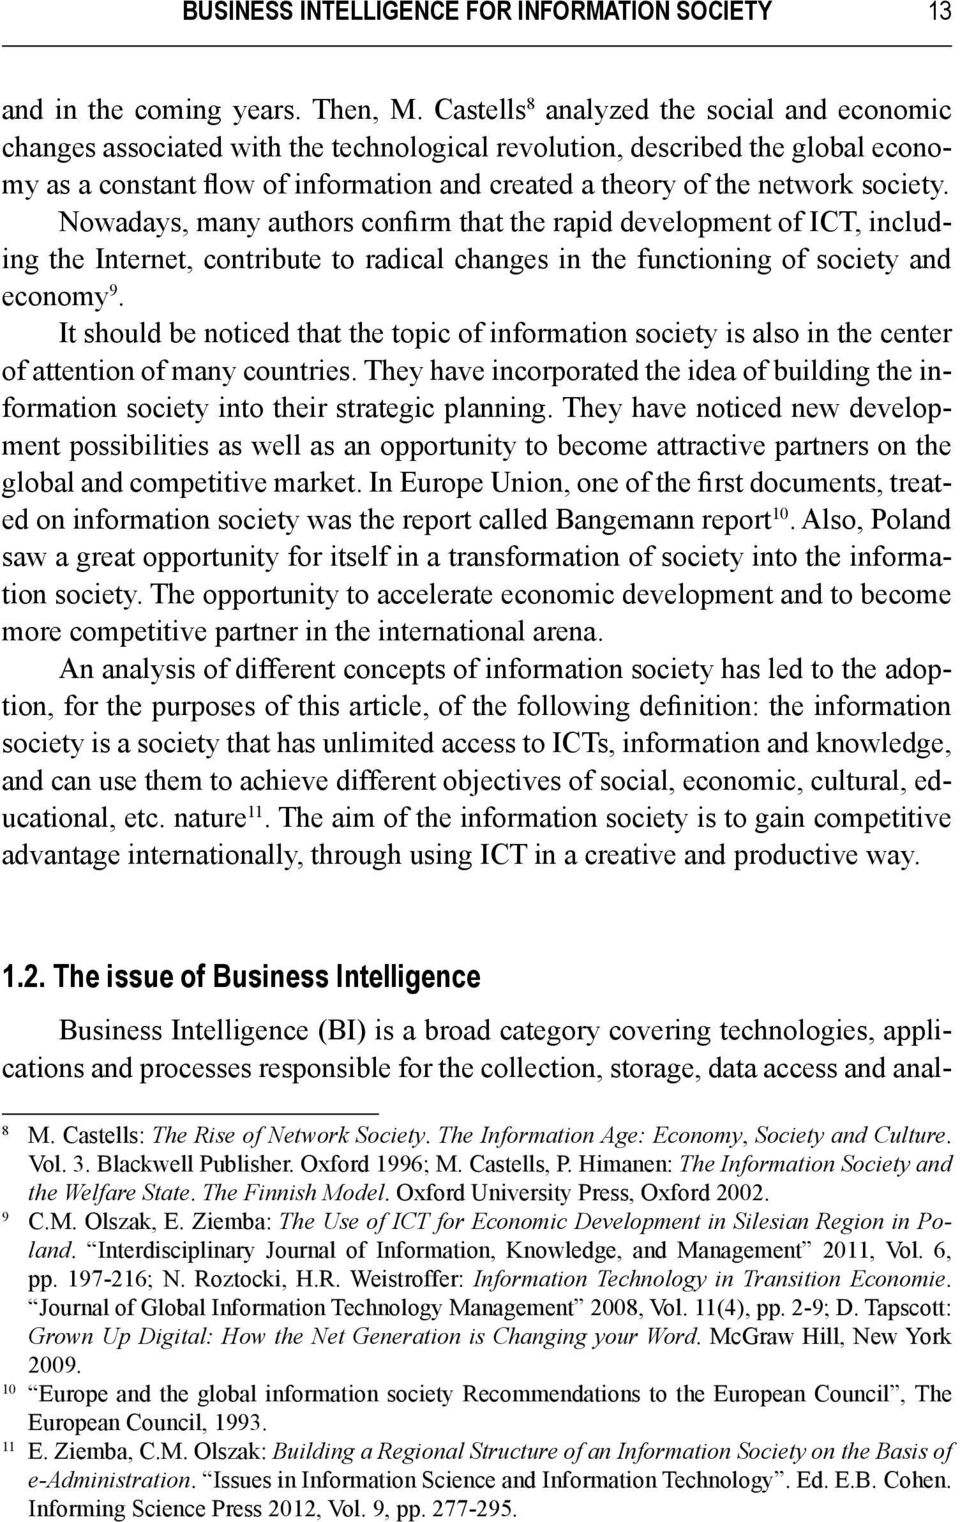 society. Nowadays, many authors confirm that the rapid development of ICT, including the Internet, contribute to radical changes in the functioning of society and economy 9.